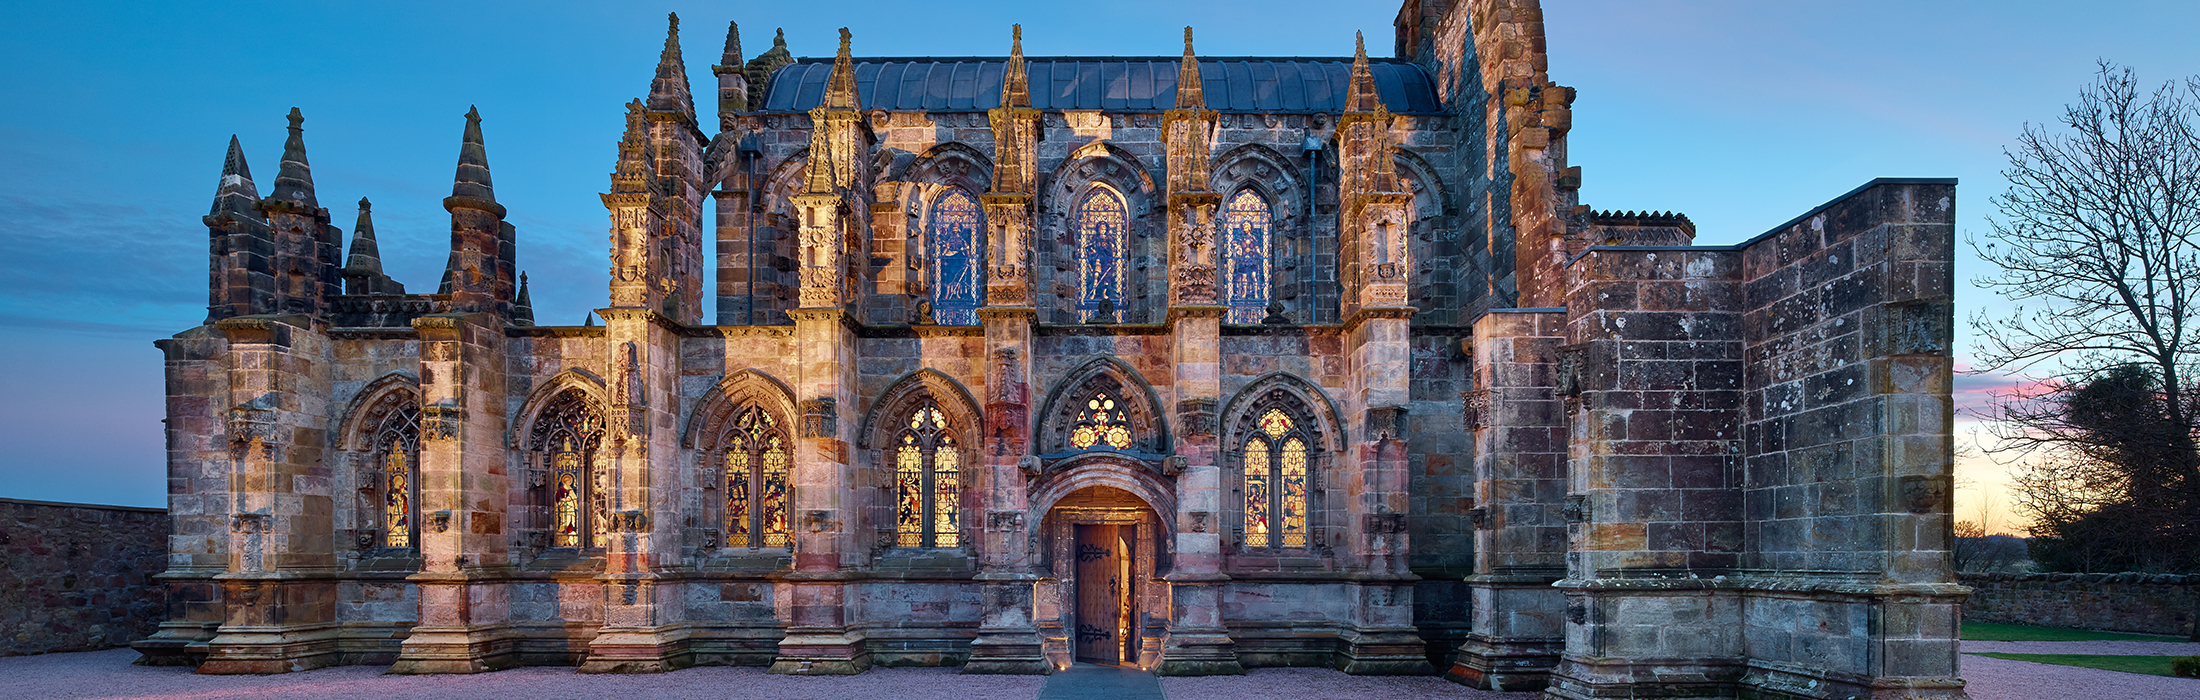 Rosslyn-Chapel-Scotland.png